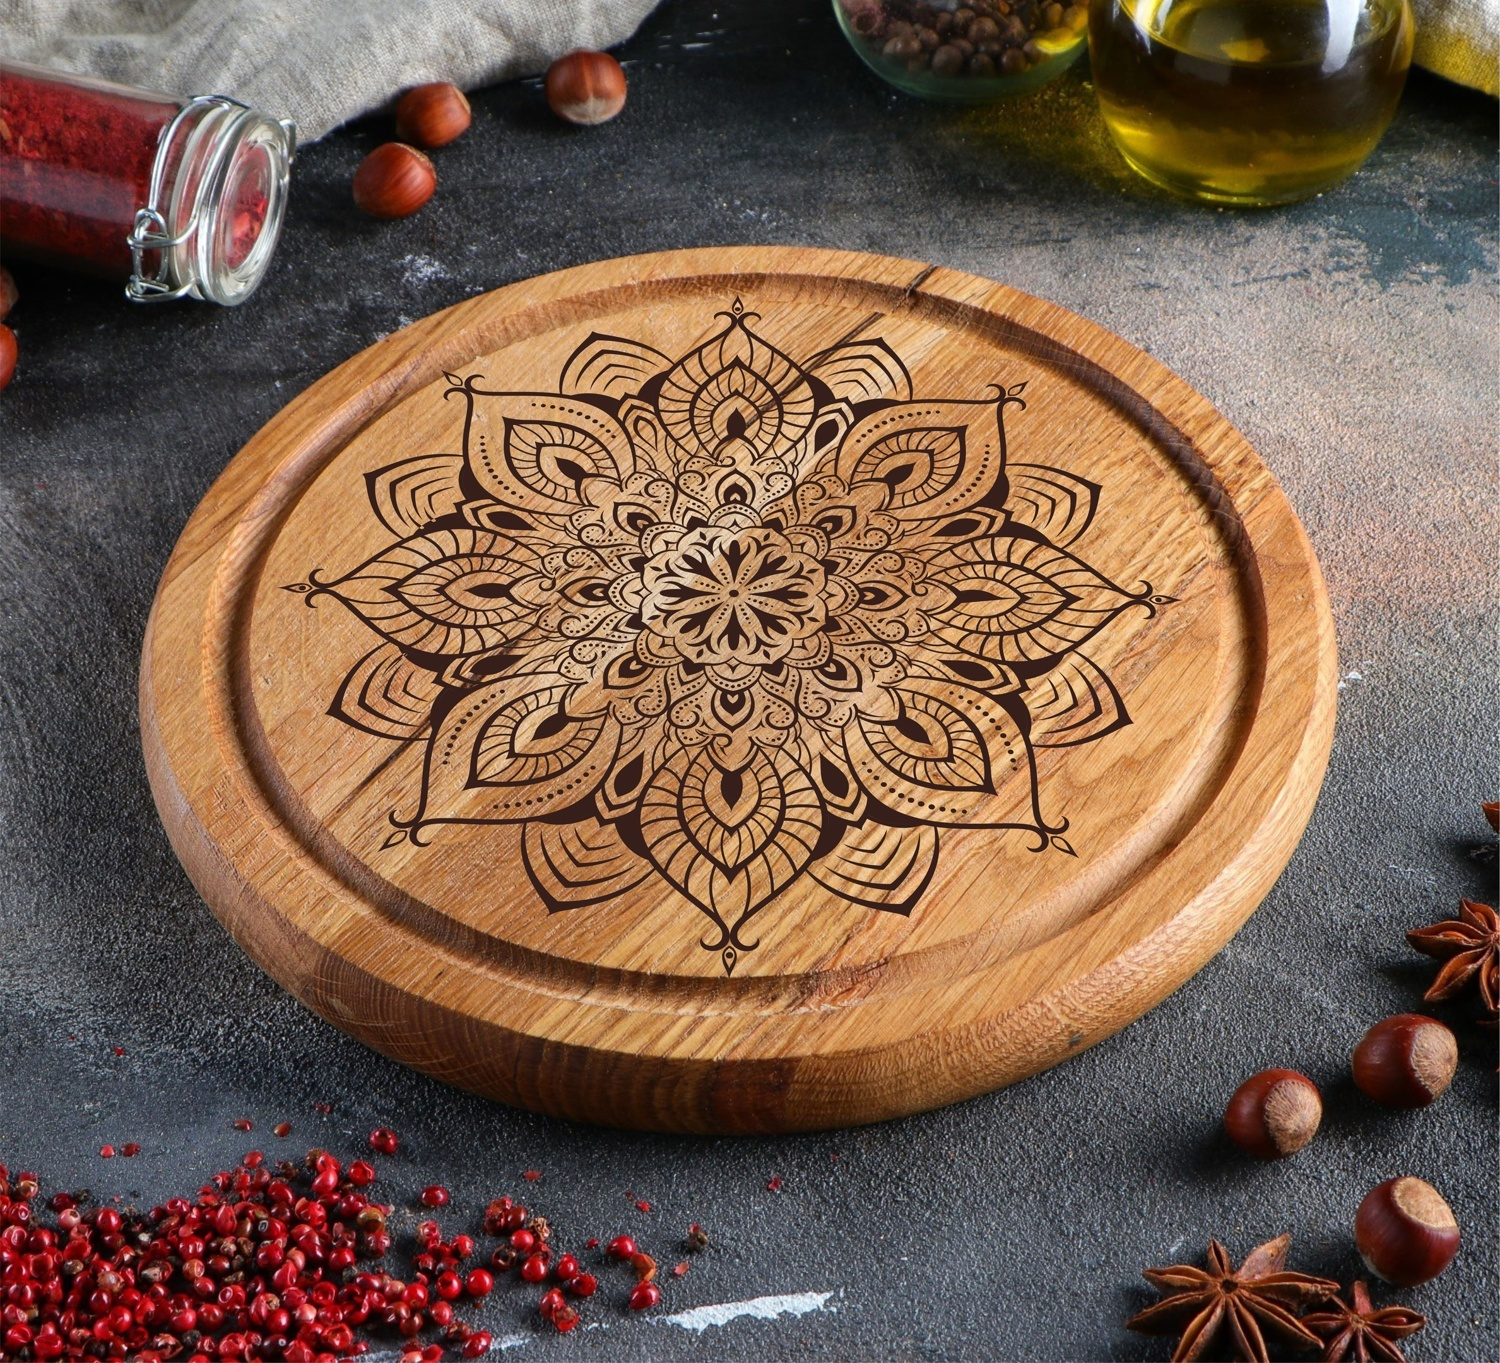 Laser Engraving Design For Food Serving Board Free CDR Vectors Art